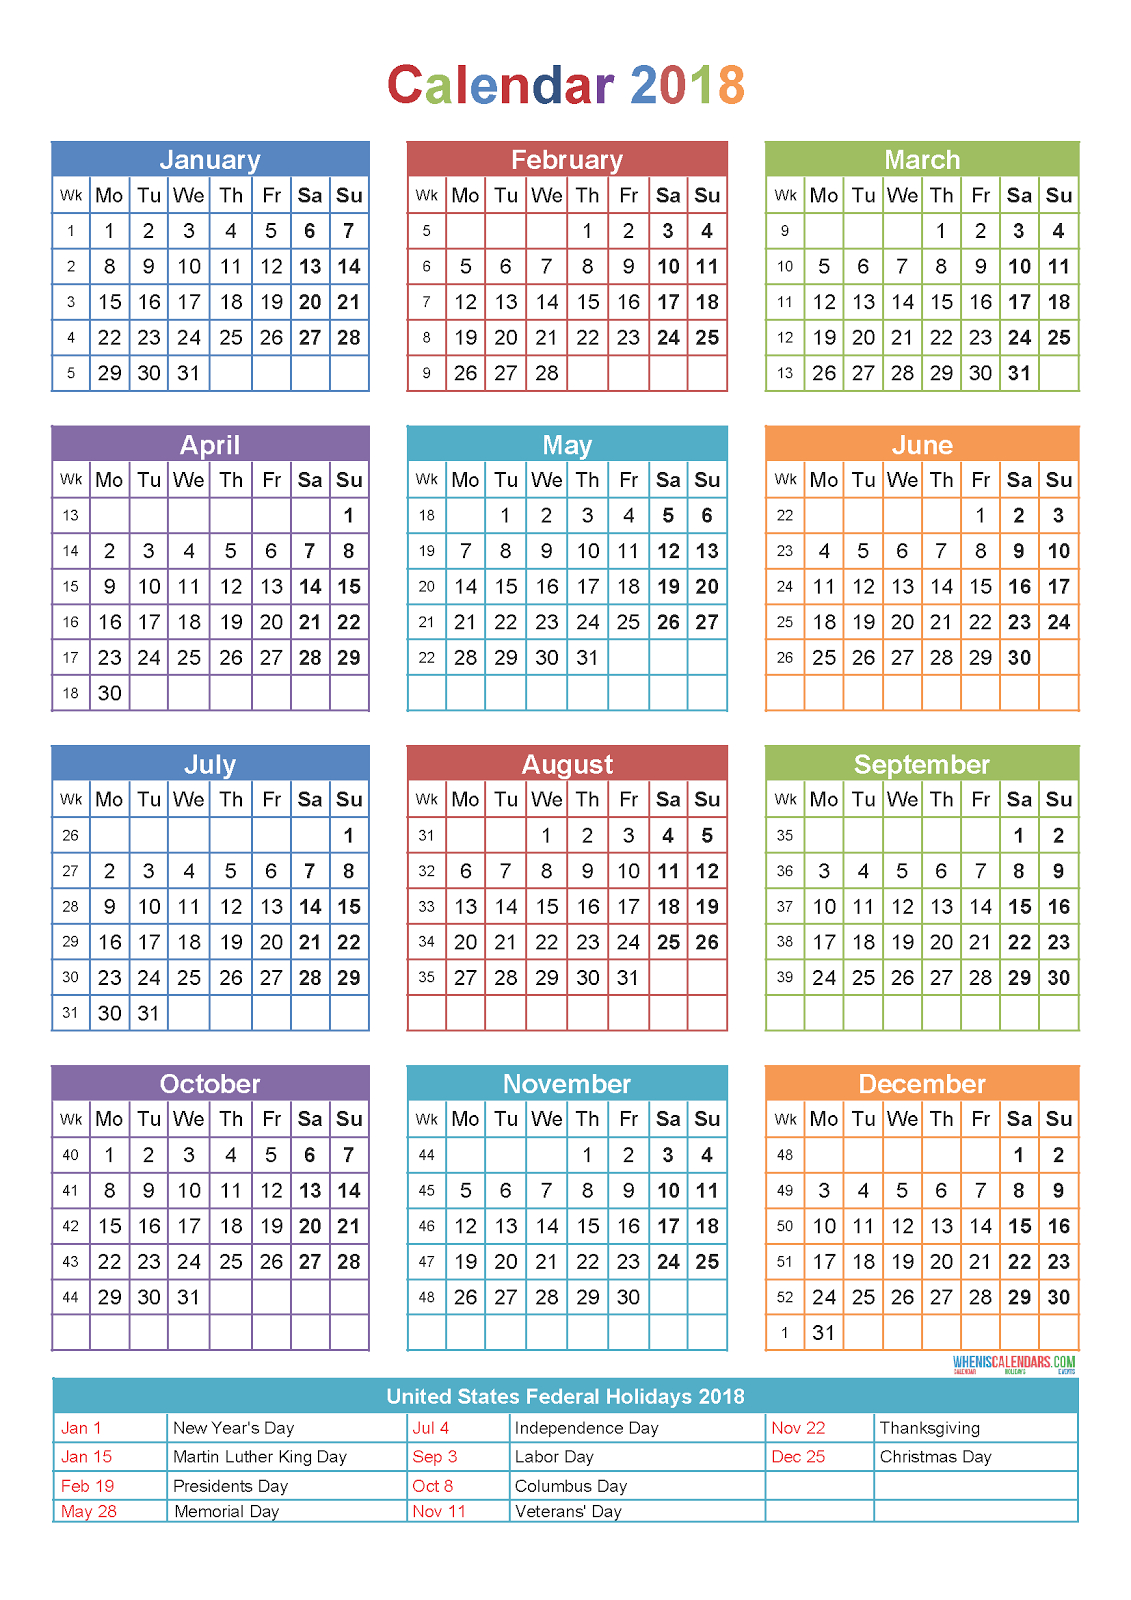 10 Yearly Calendar 2018 Templates Pdf Word Excel 2020 1